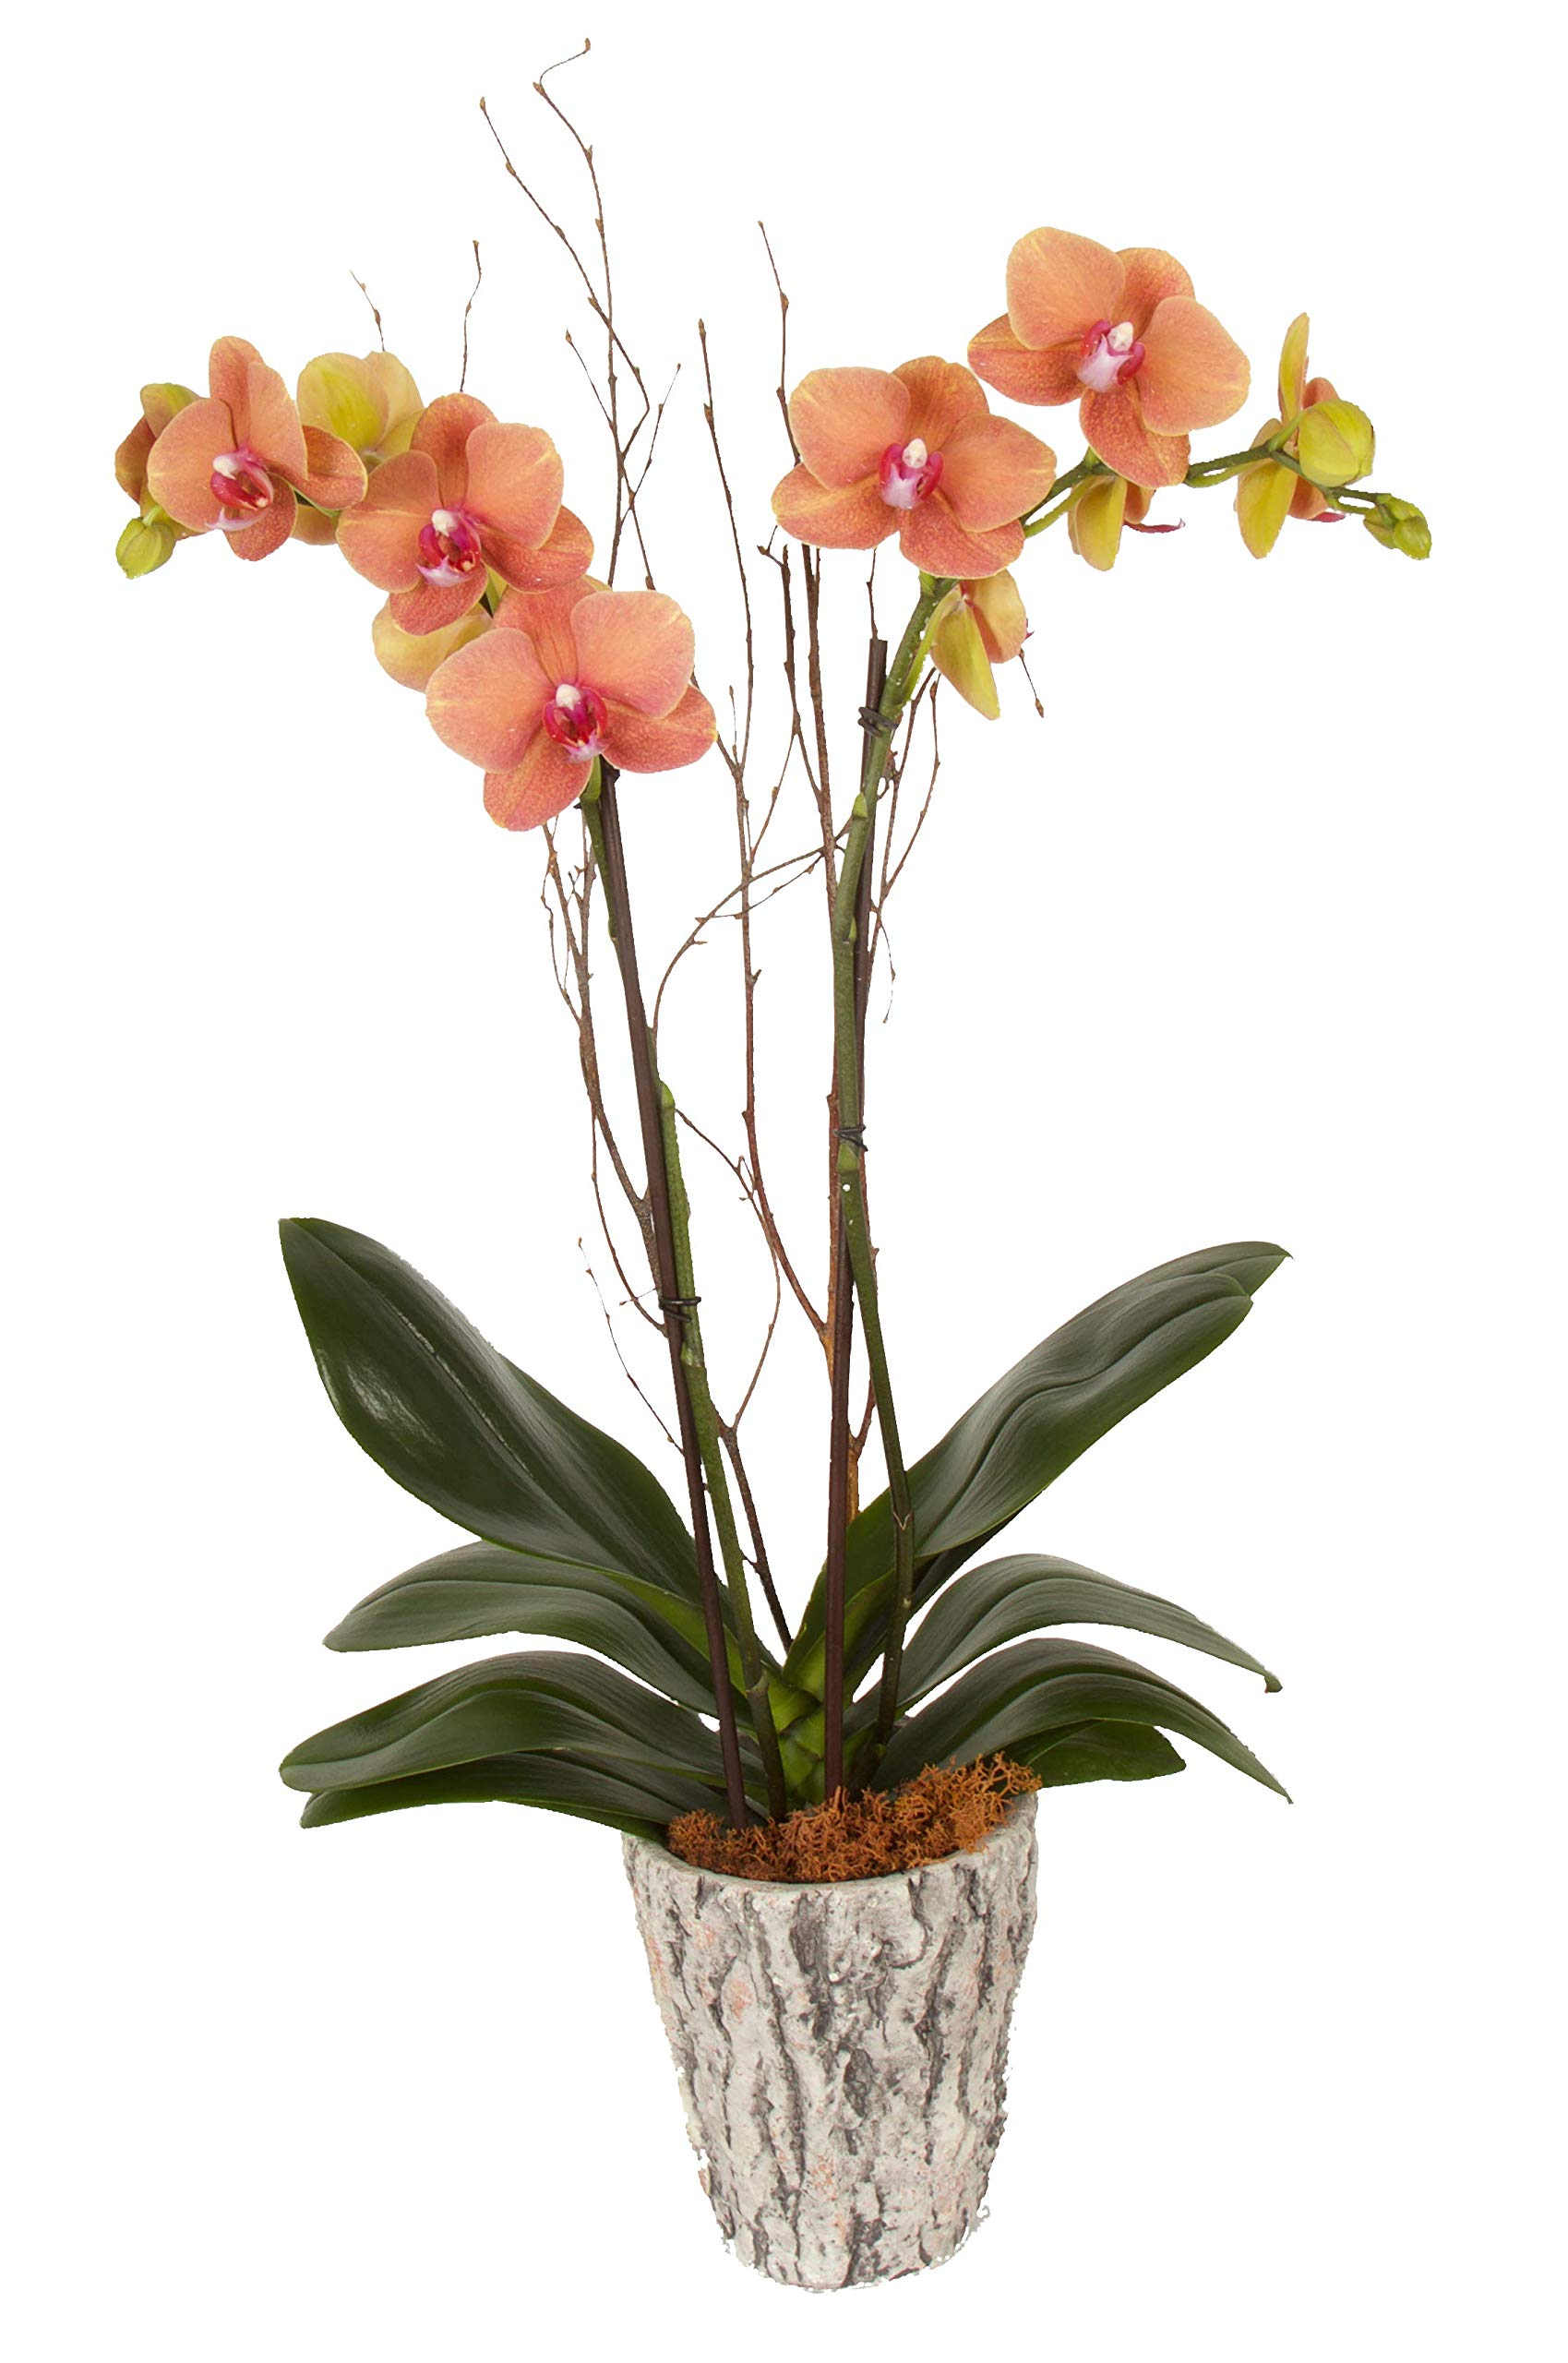 Color Orchids AMZ3101FBO Live Fall Double Stem, 20'' x 24'' Tall, Orange Blooms Orchid Plant in Ceramic Pot, by Color Orchids